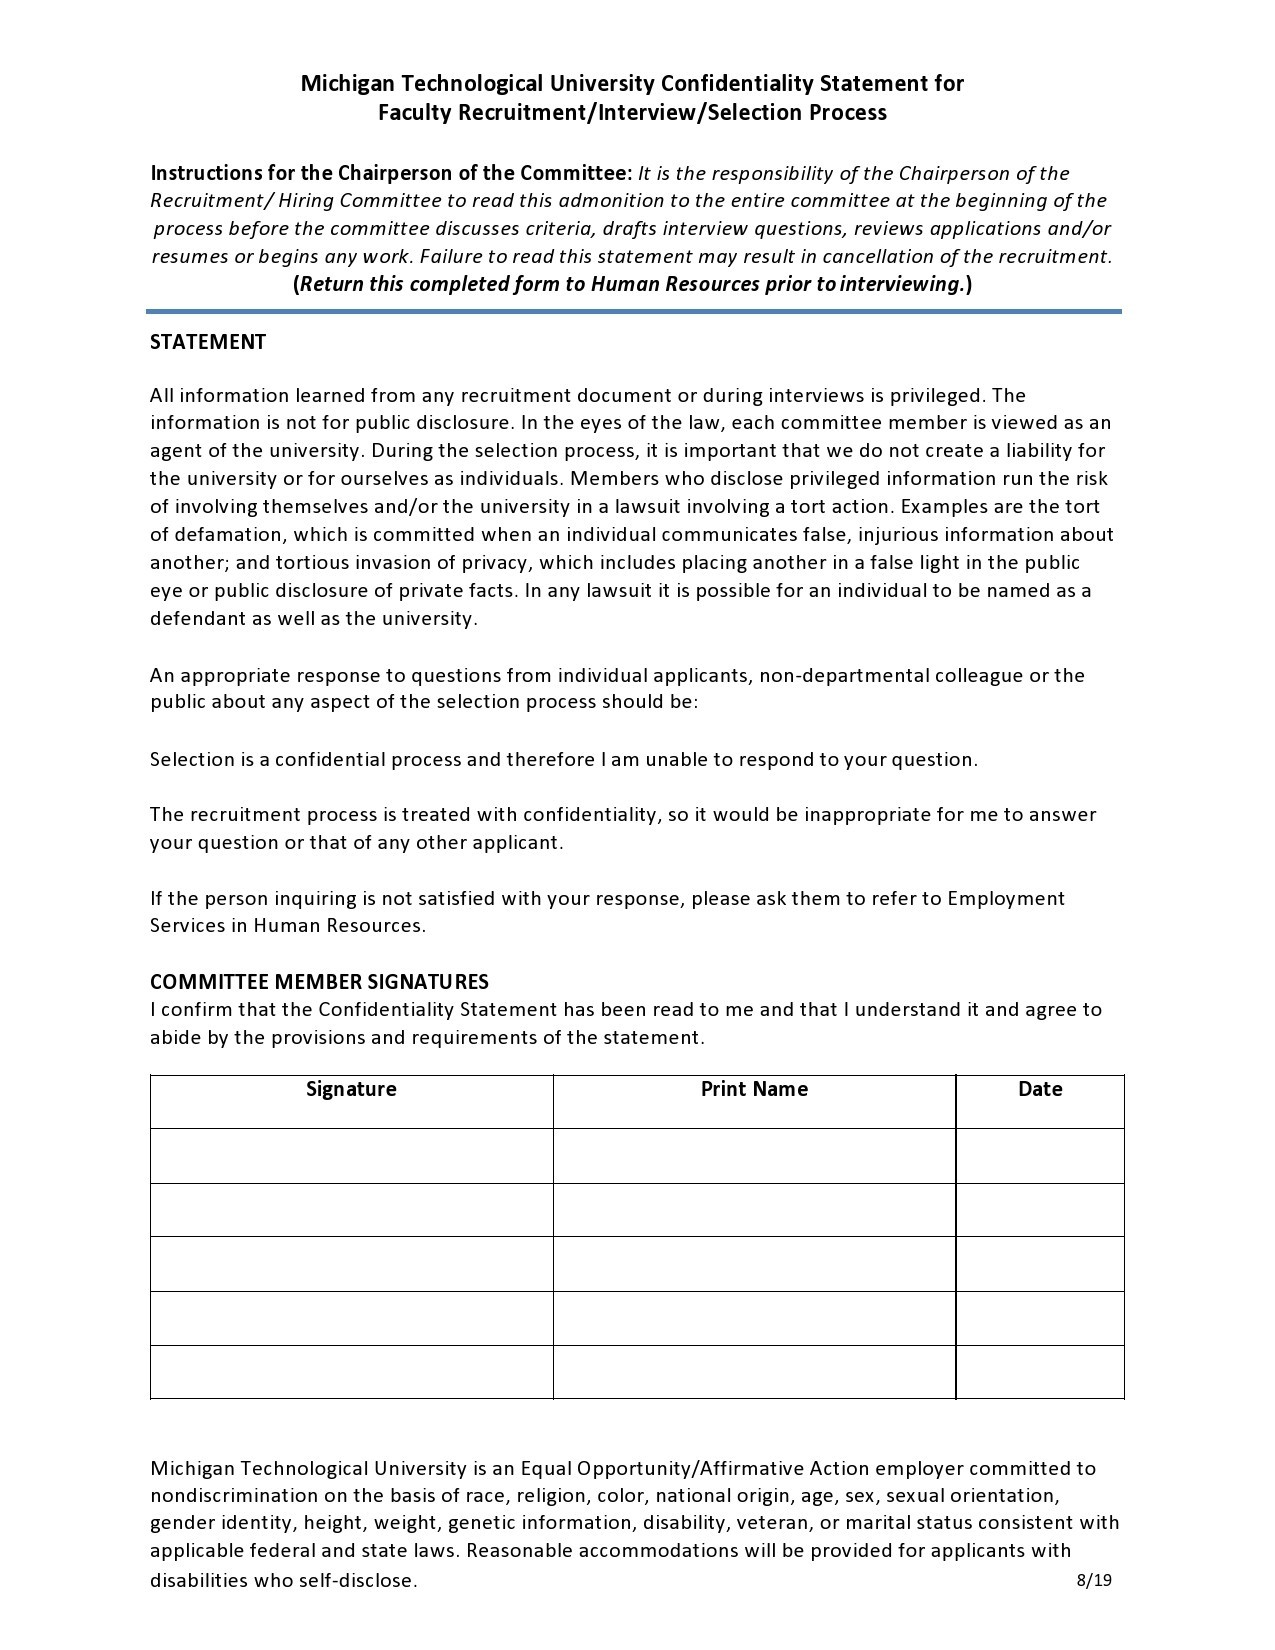 Free confidentiality statement 17